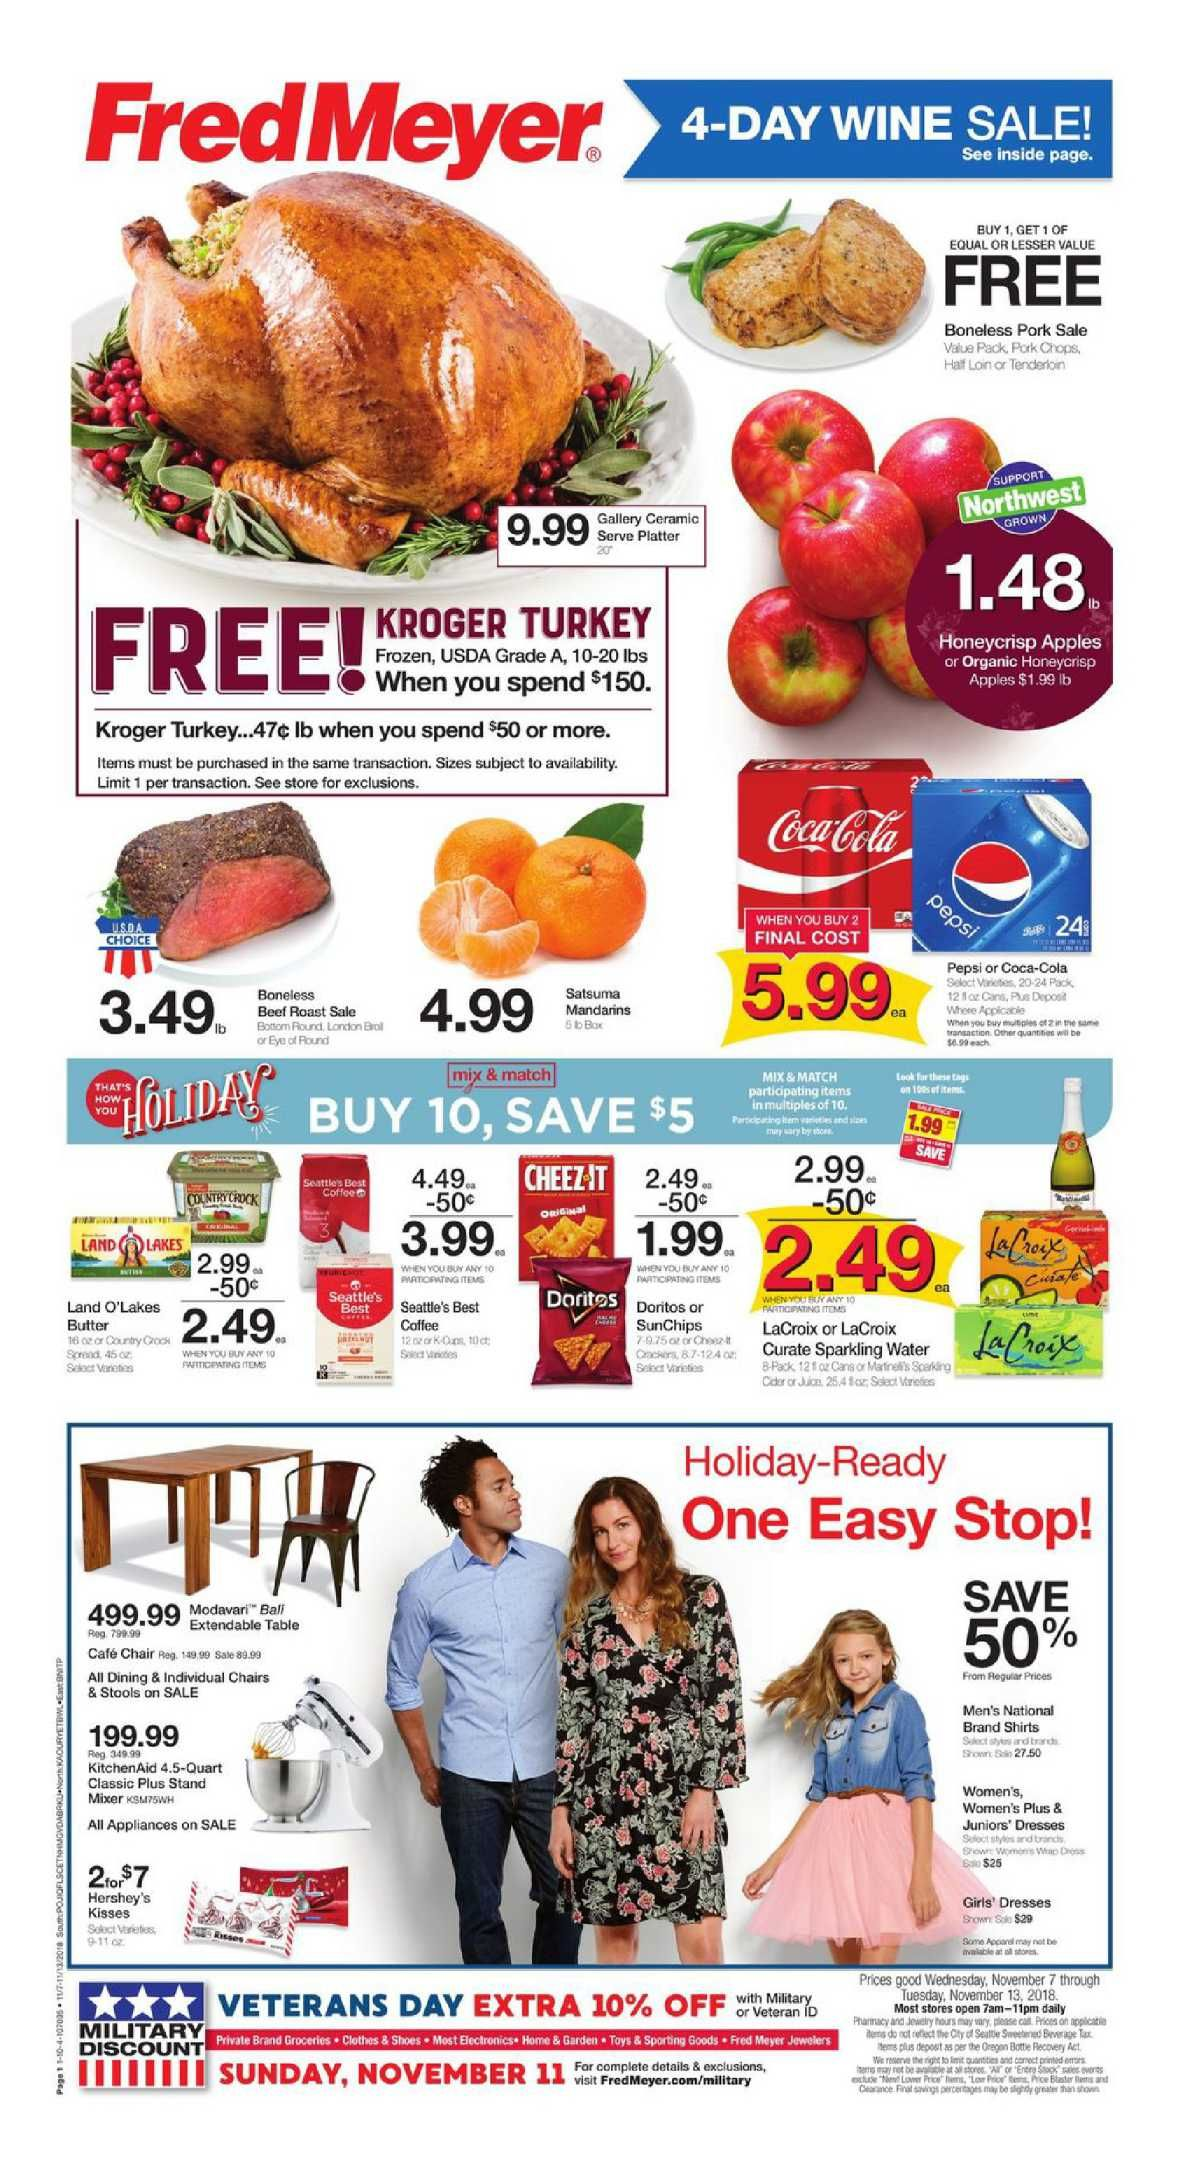 4a2c2a202427 Check Latest Fred Meyer Weekly ad flyer November 7 – 13